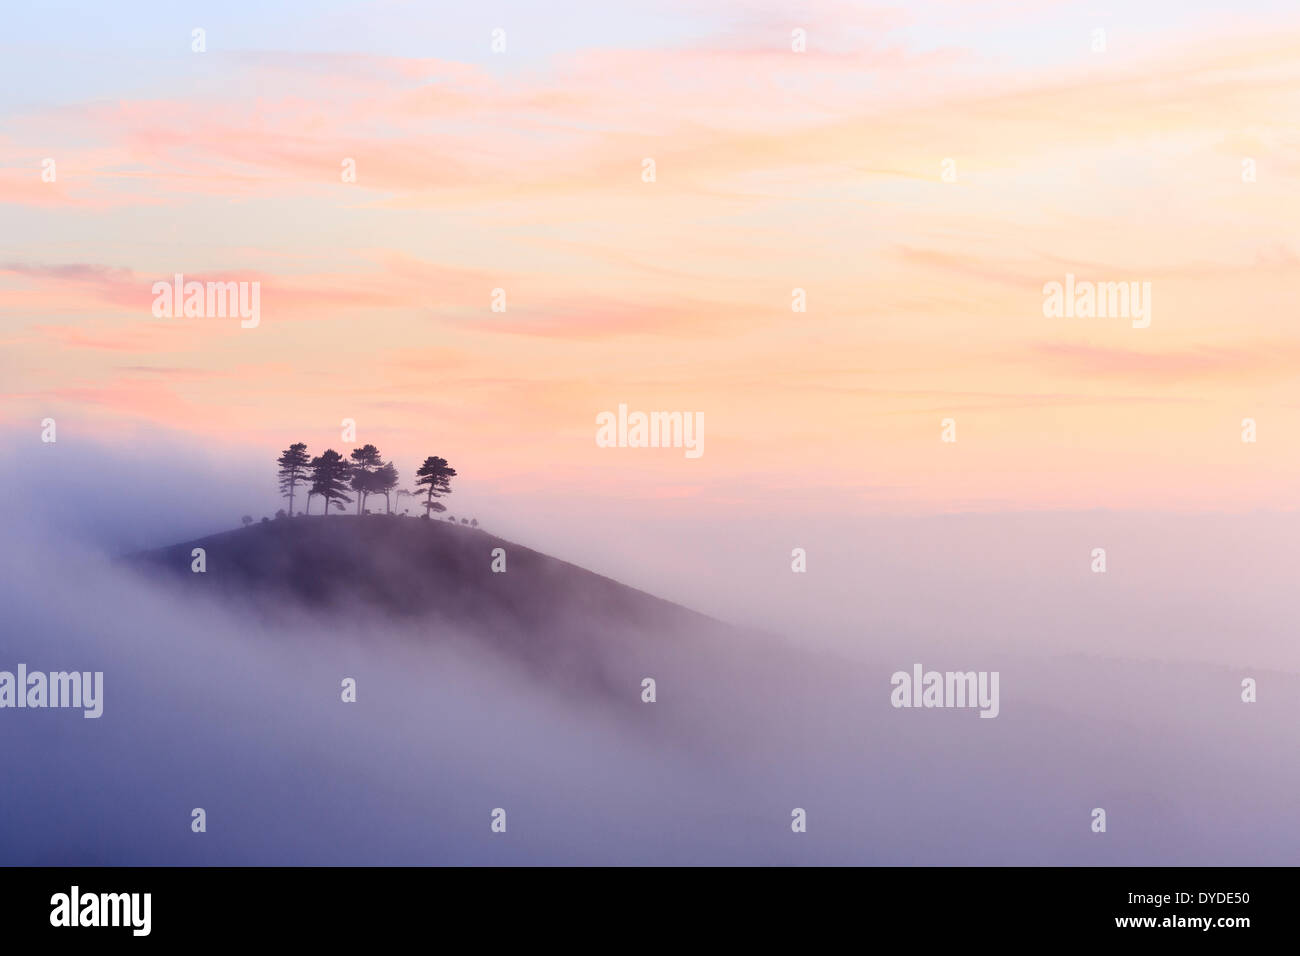 Colmer's Hill in Dorset on a misty autumn morning. - Stock Image